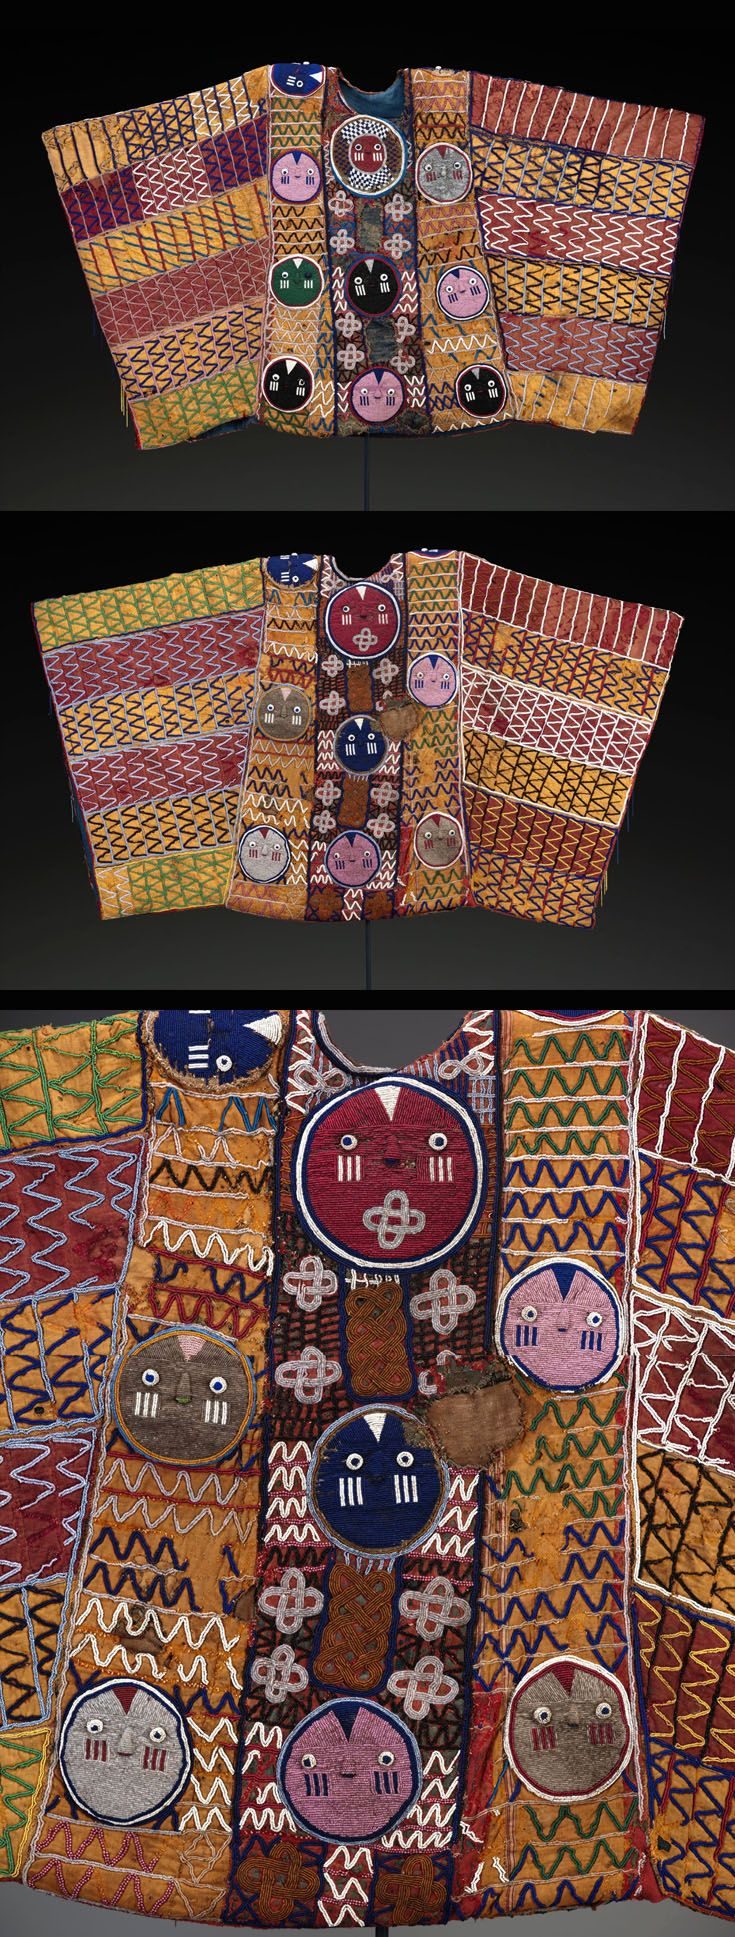 Africa | King's ceremonial robe from the Yoruba people of Nigeria. | Velvet, cotton, glass beads | ca. 1925 - 1950